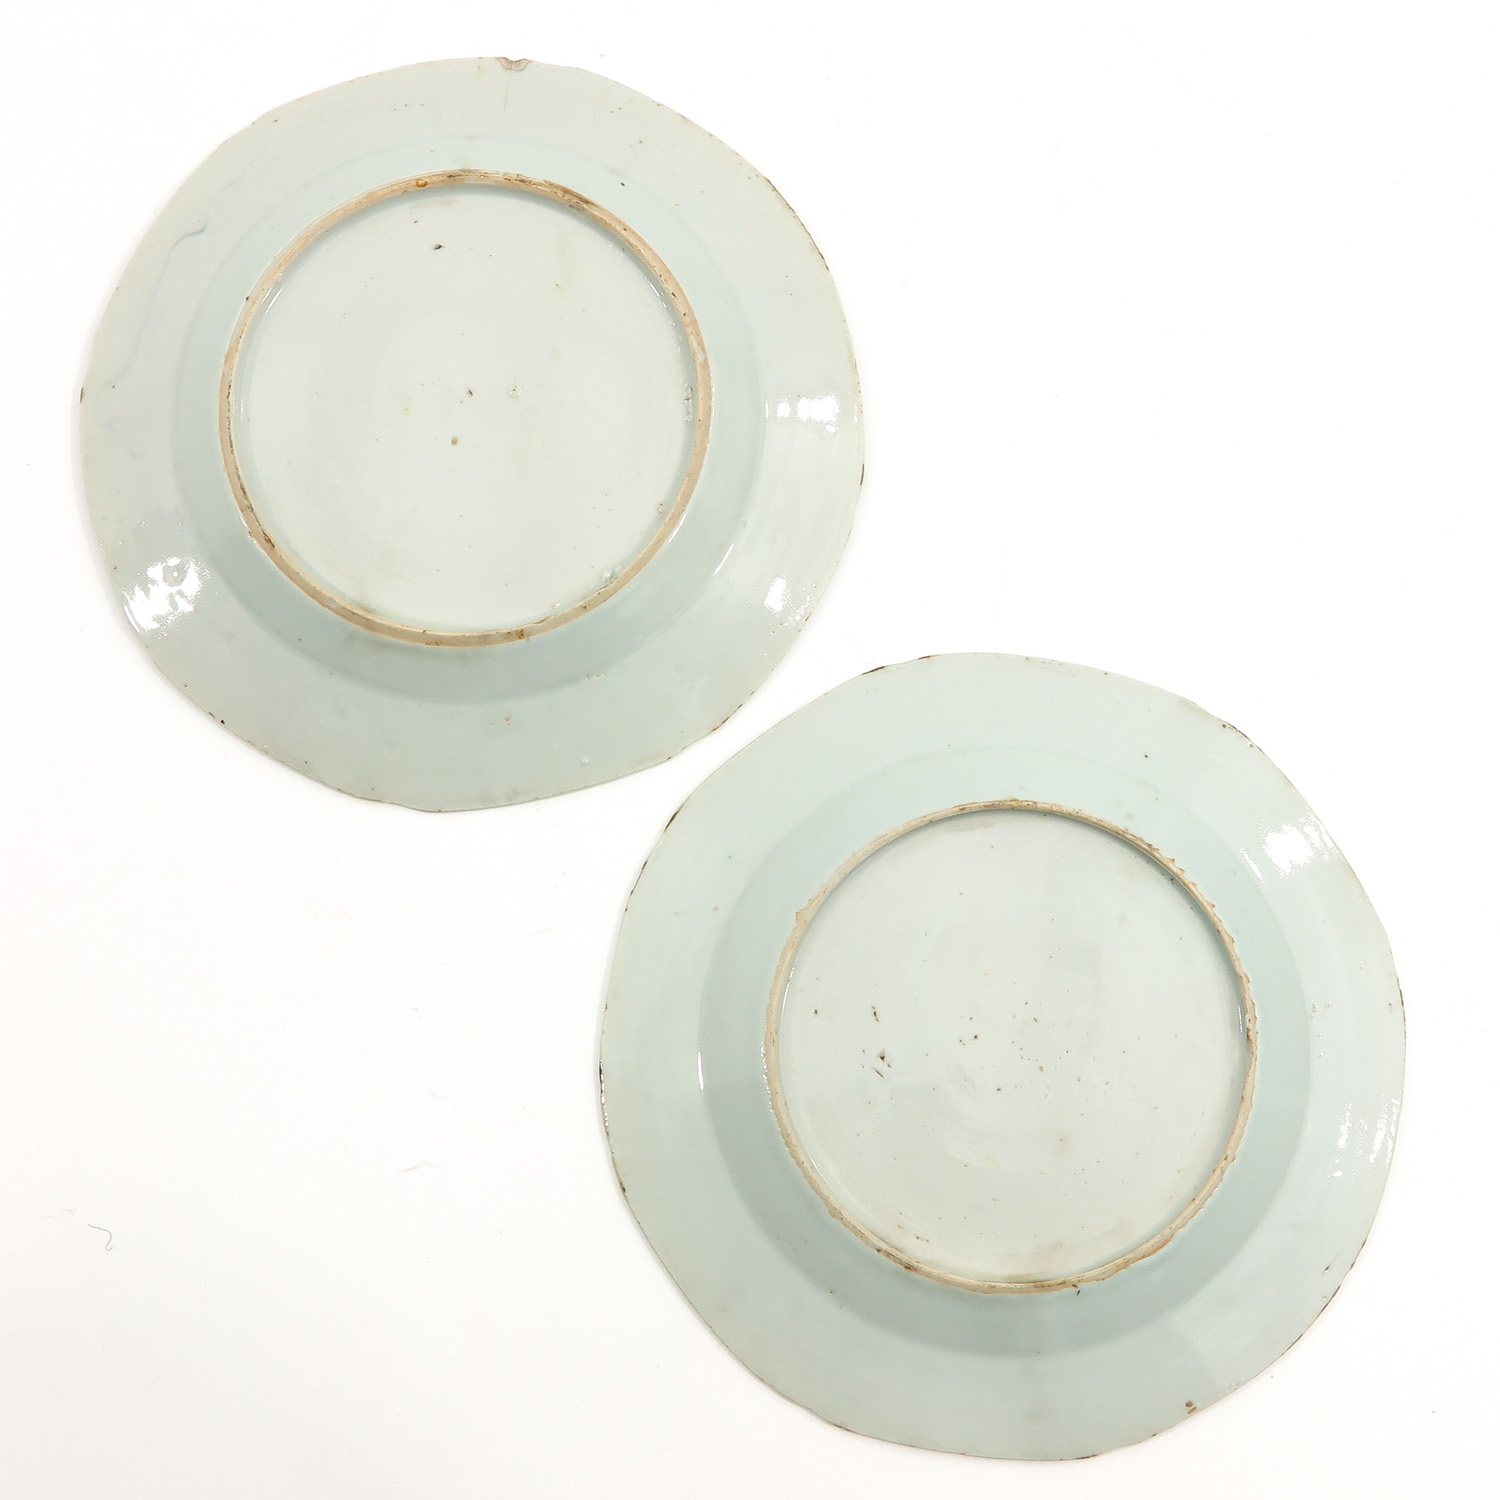 A Collection of 6 Blue and White Plates - Image 8 of 10